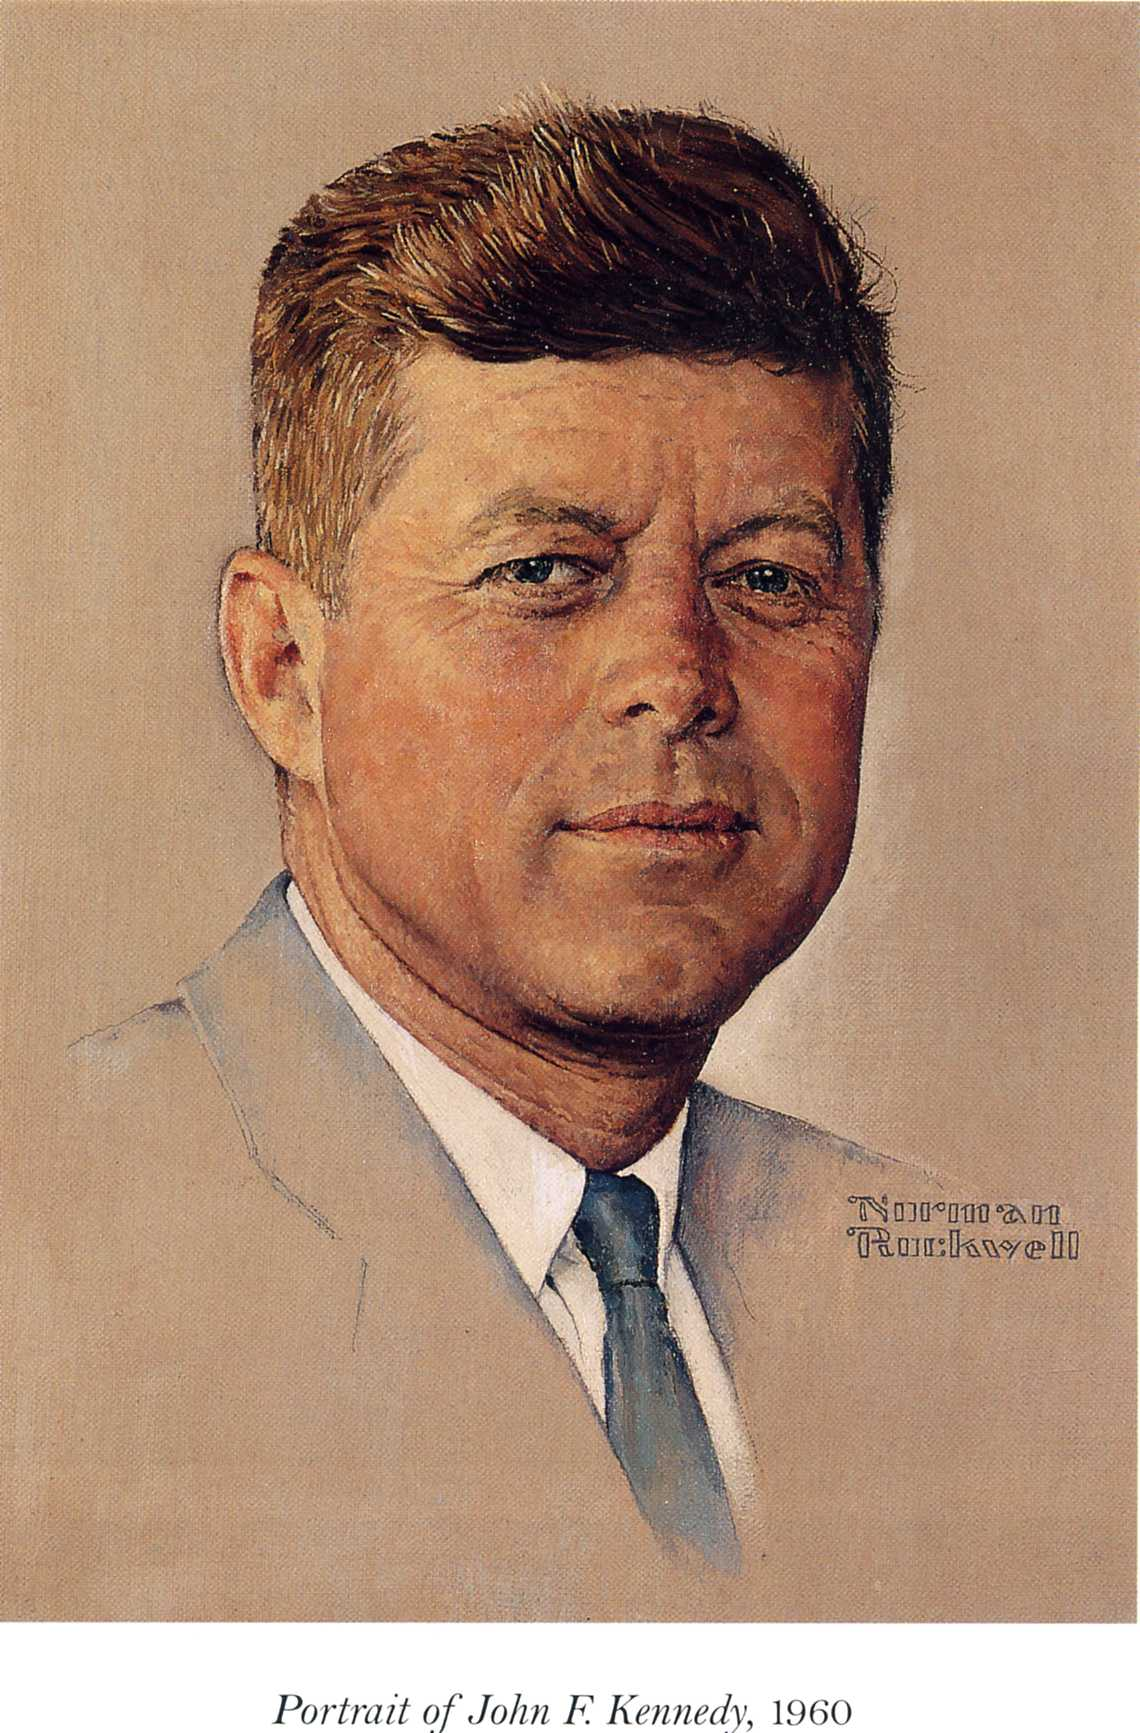 Portrait of John F.Kennedy - Norman Rockwell - WikiPaintings.